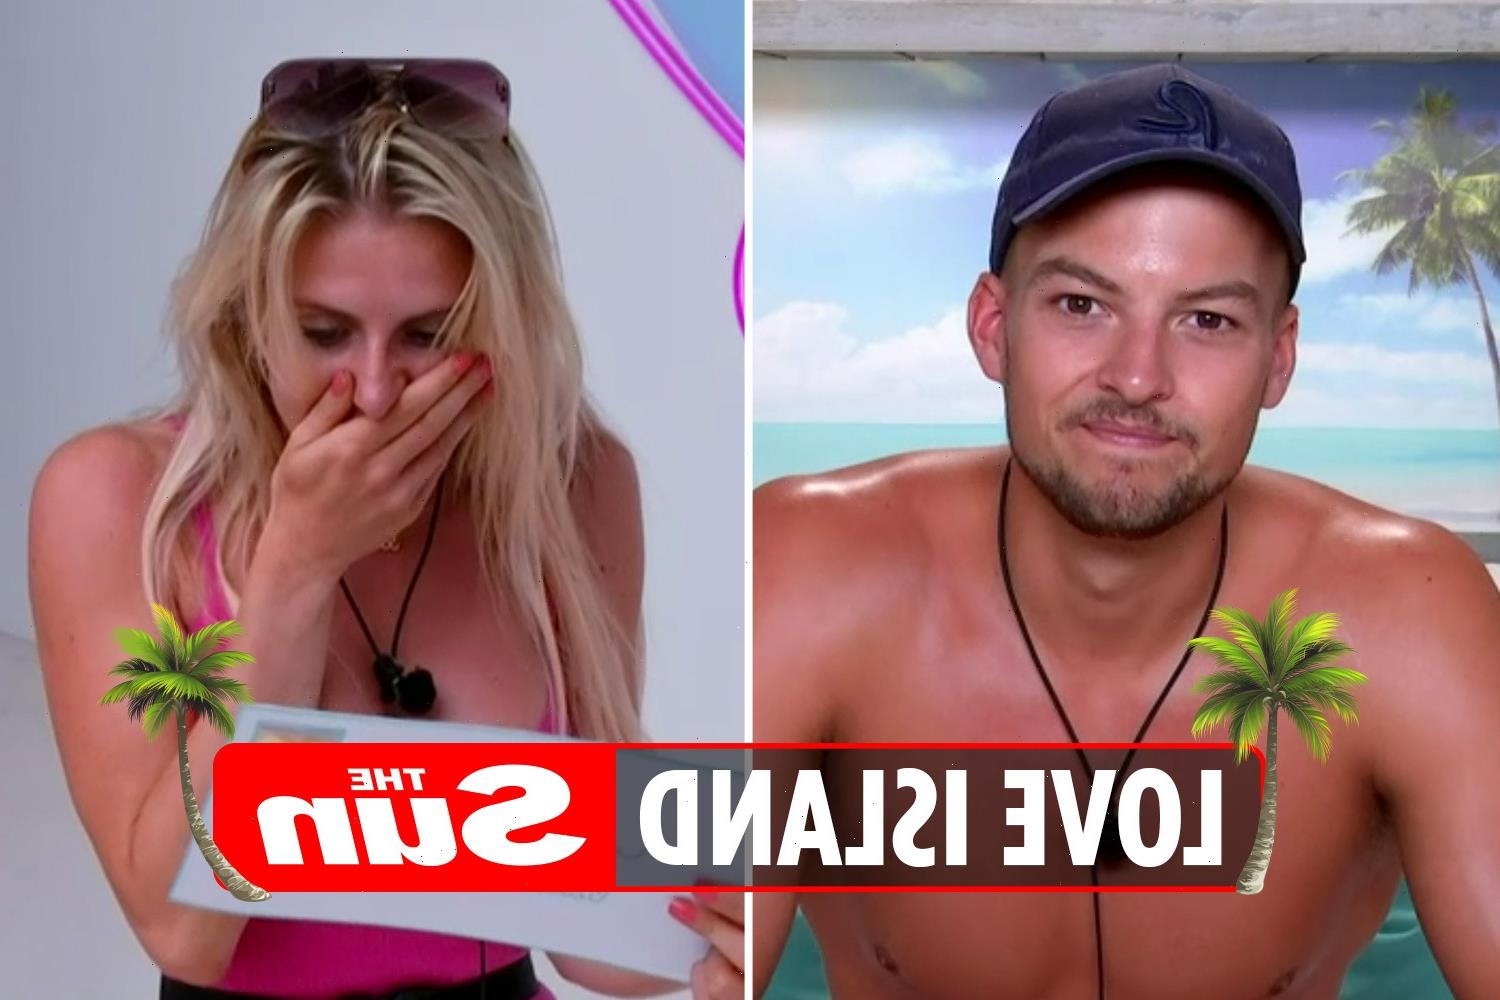 Love Island fans claim shocking postcard is from Hugo as he 'rats out all the boys who cheated' in Casa Amor